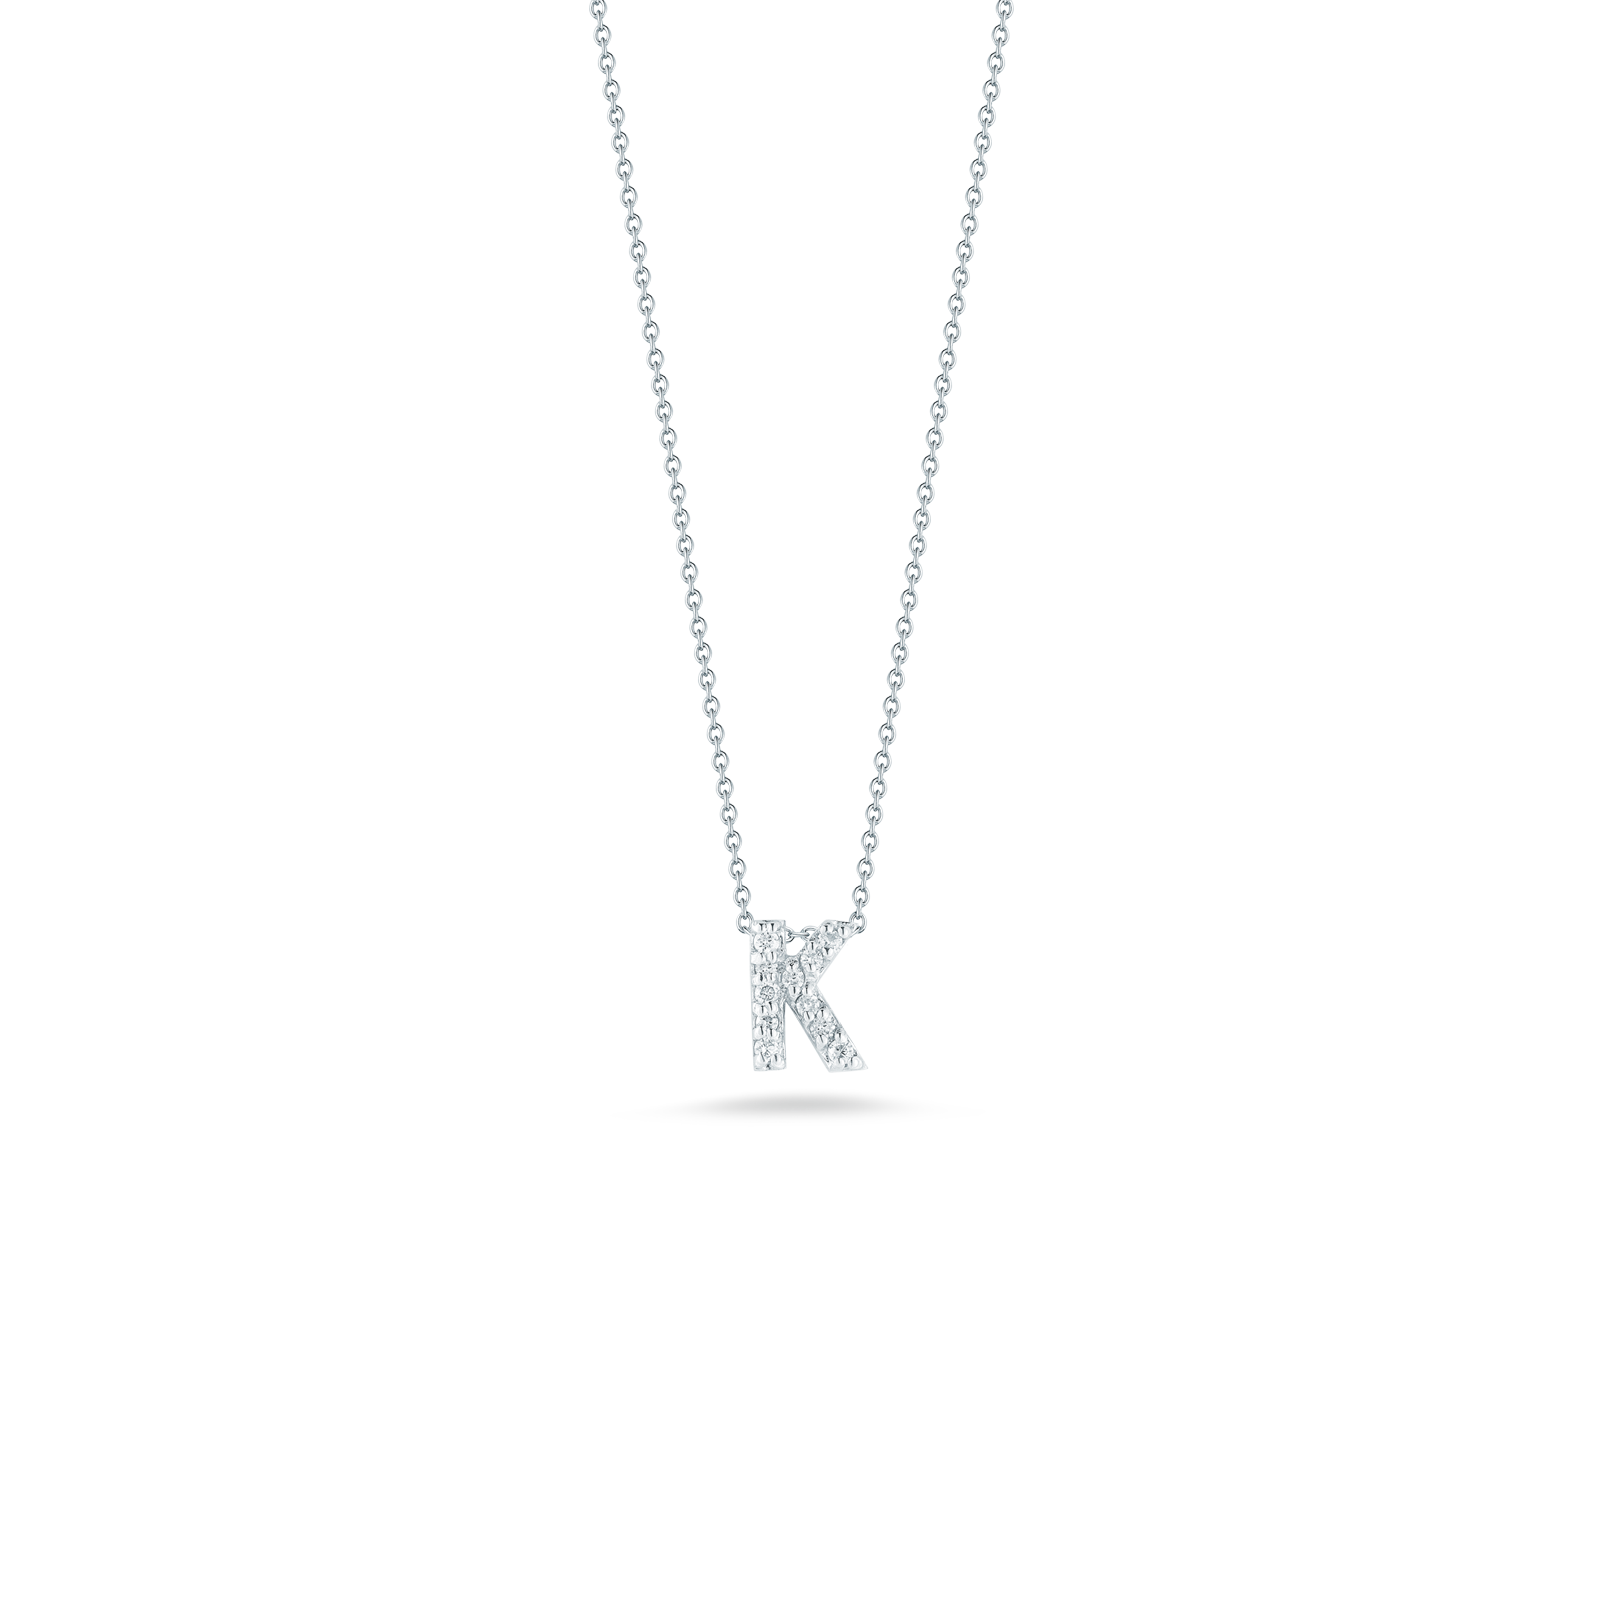 18K White Gold Love Letter K Pendant With Diamonds